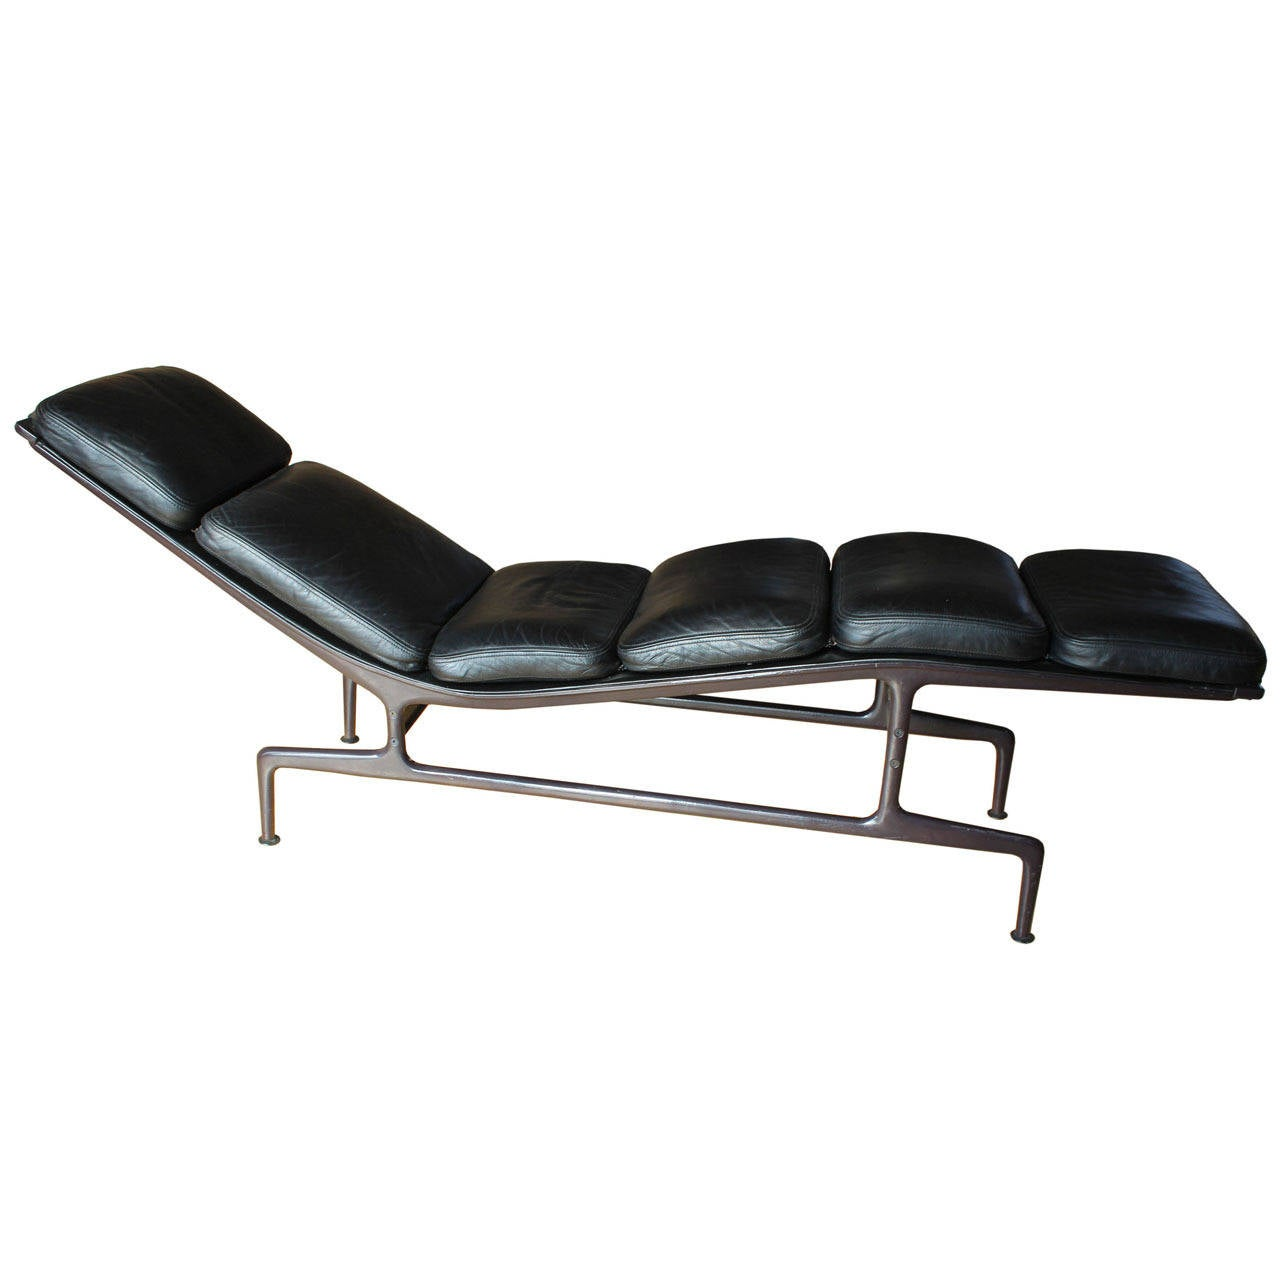 Eames billy wilder chaise for sale at 1stdibs for Chaise eames